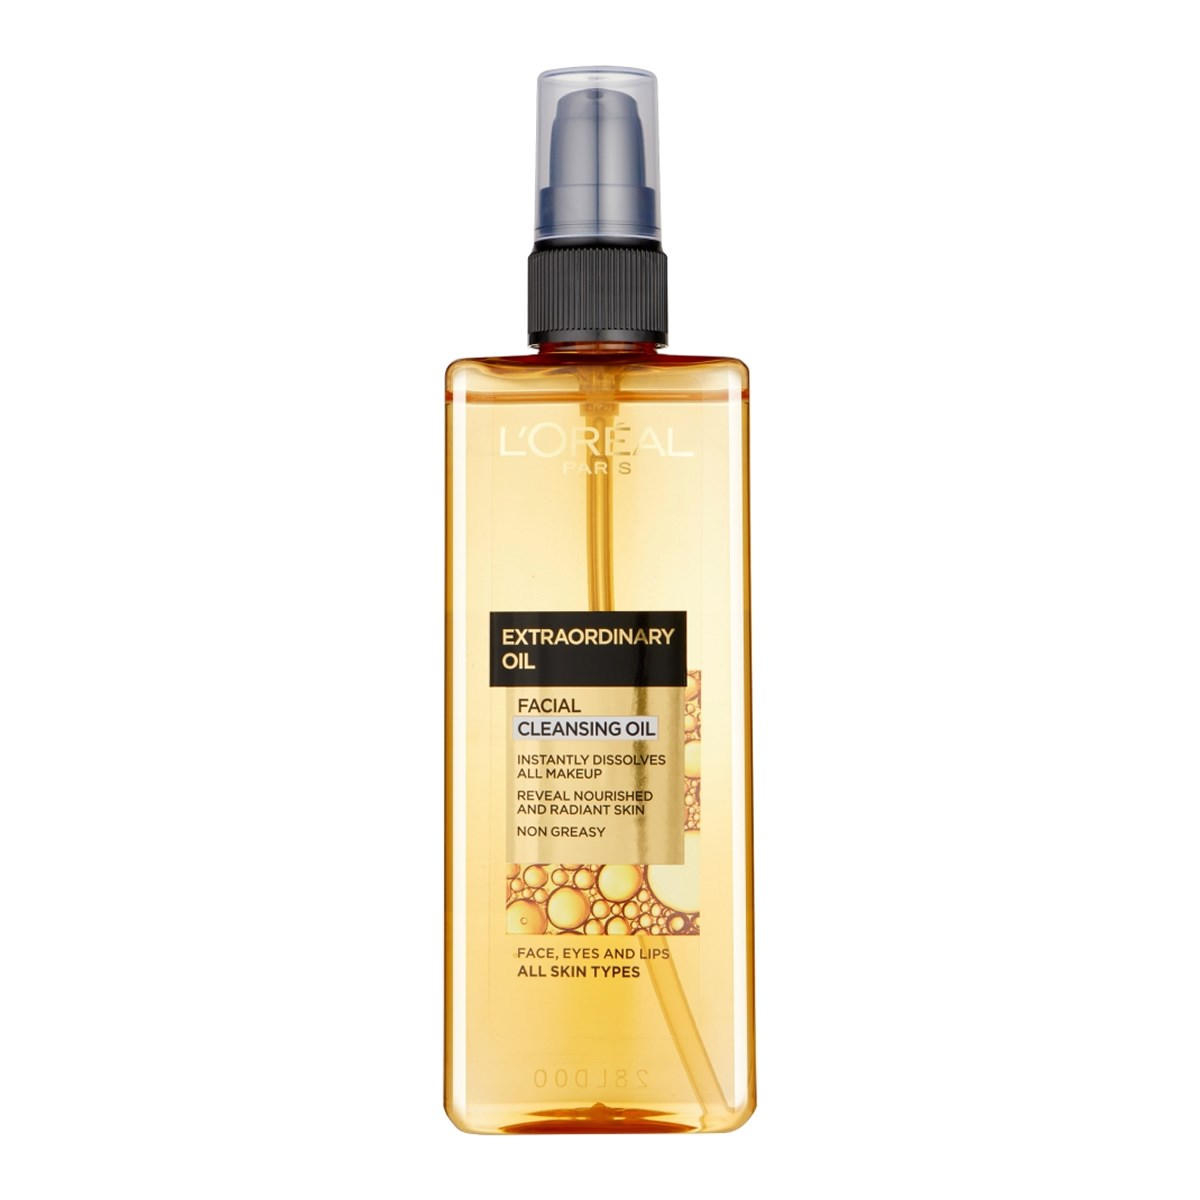 L'Oreal Paris Extraordinary Oil Facial Cleansing Oil - All Skin Types